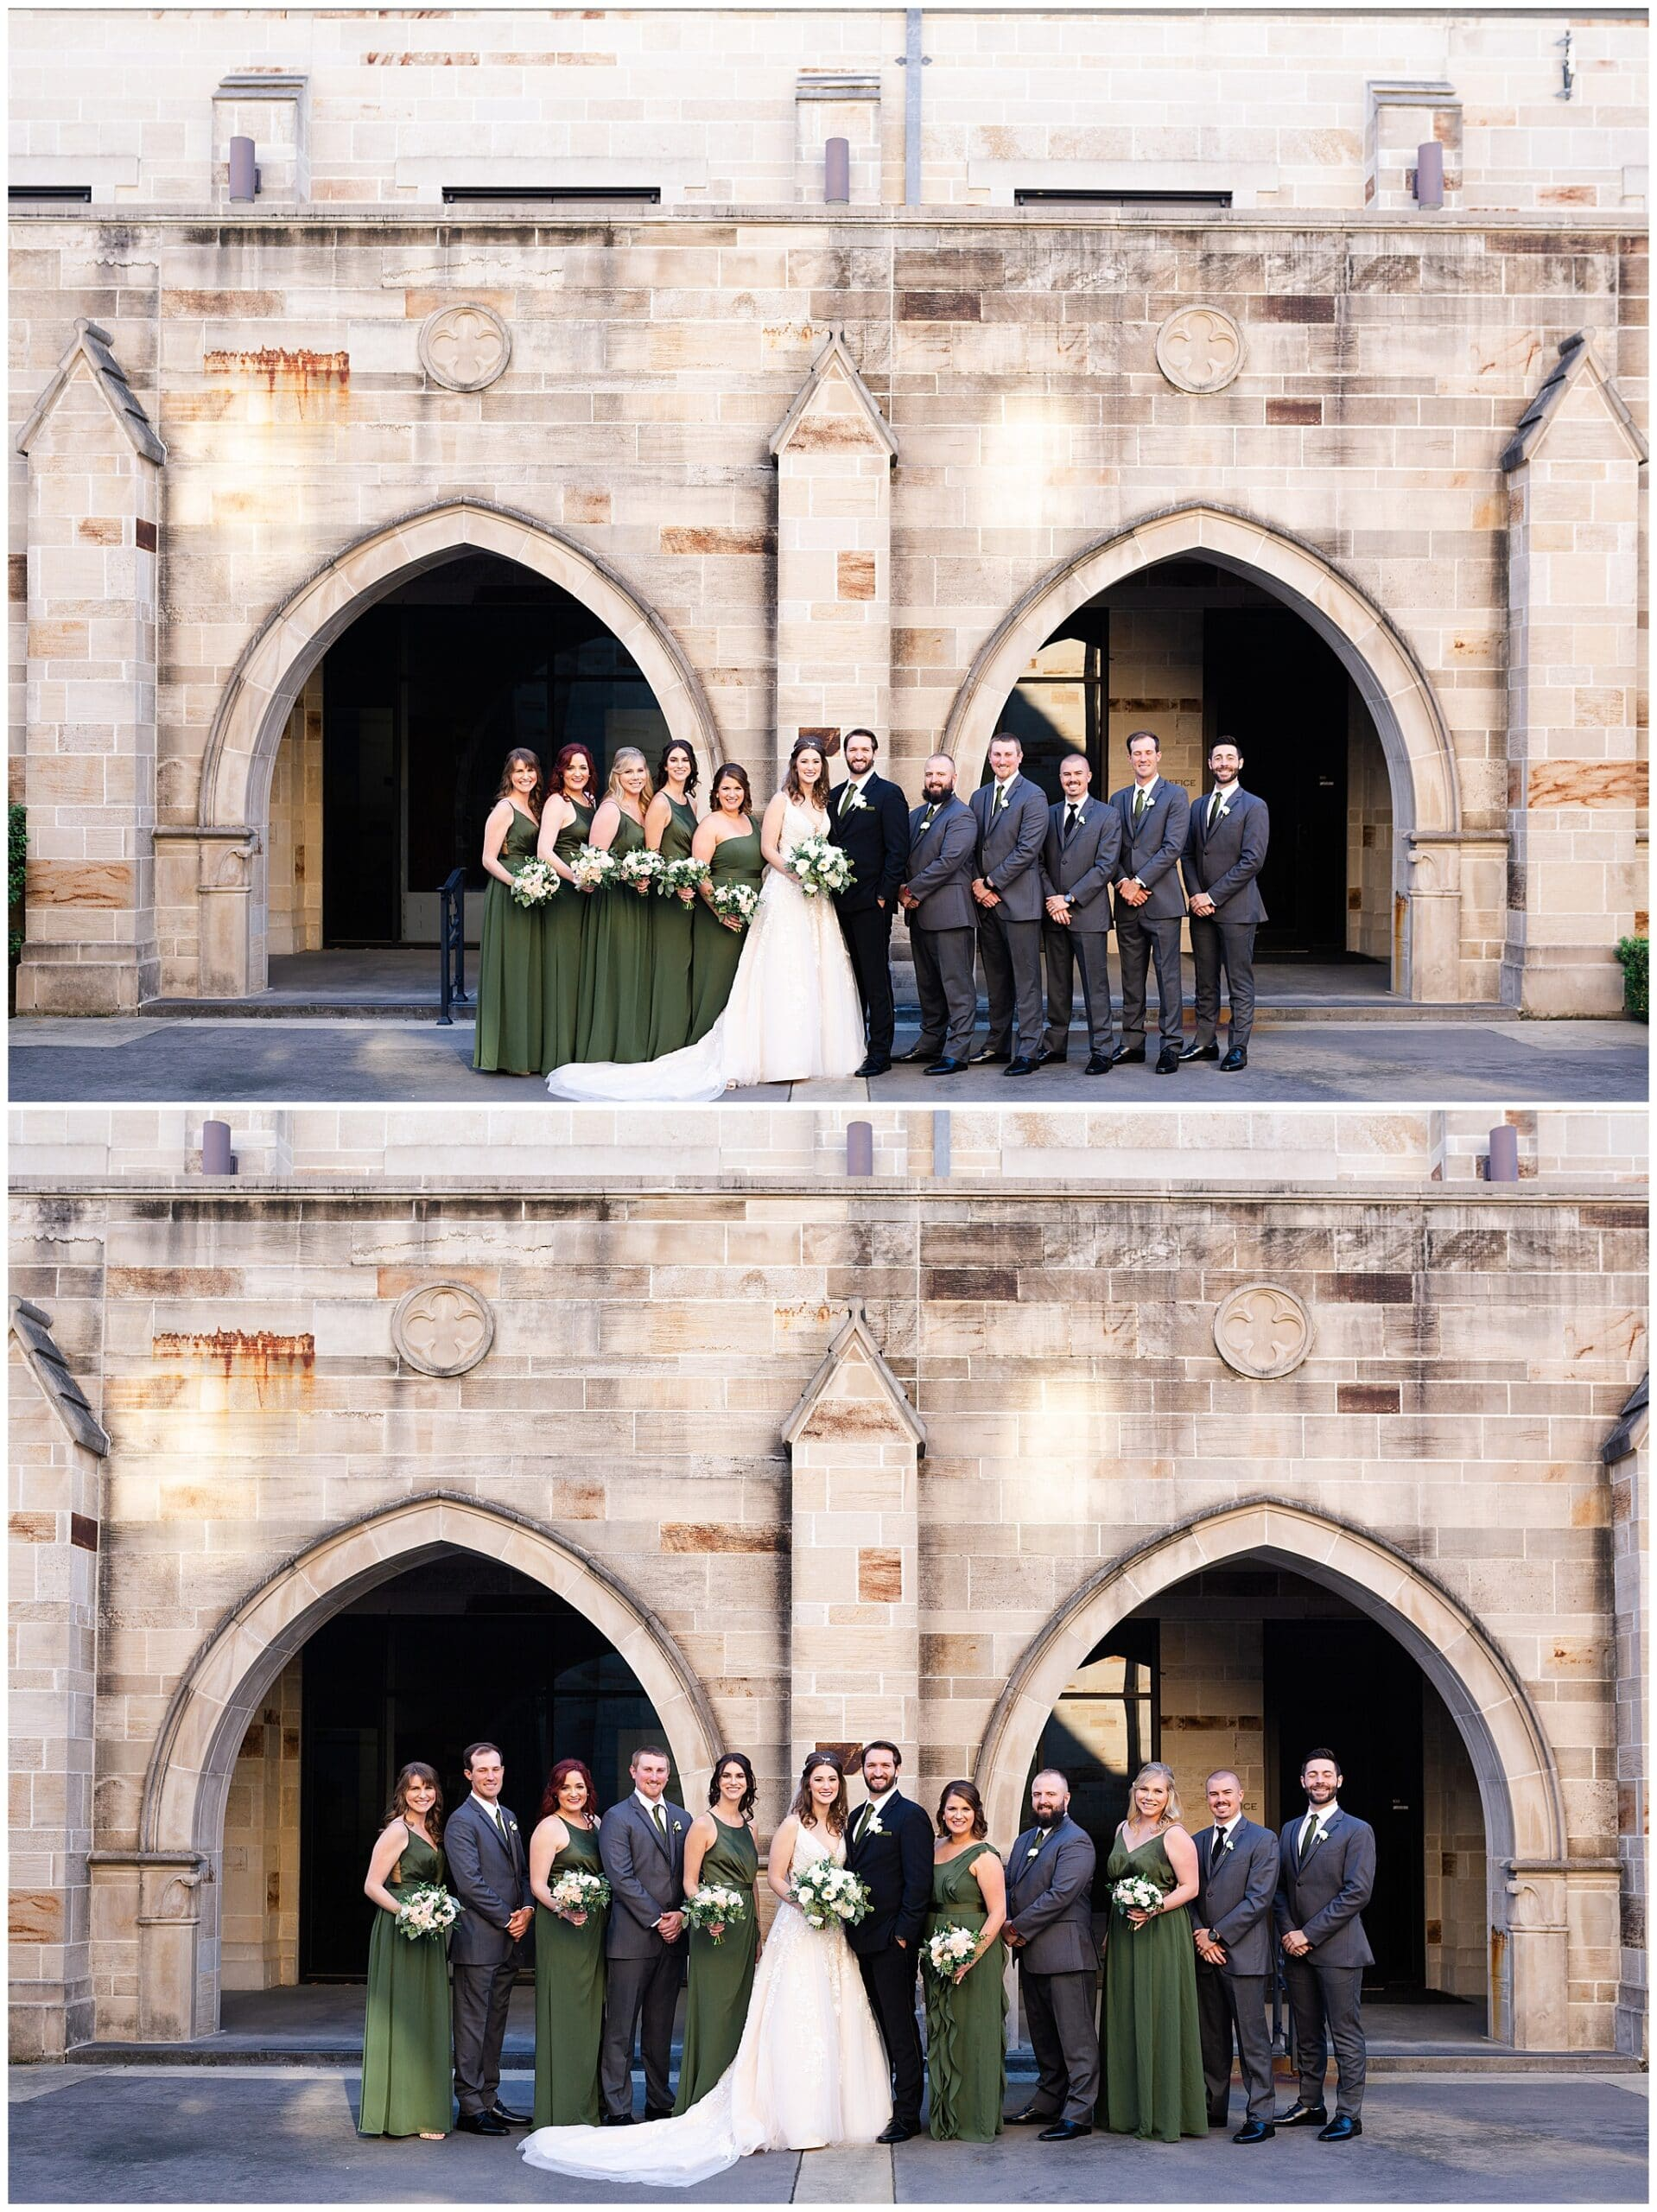 wedding party portraits at Holy Rosary Catholic Church captured by Swish and Click Photography